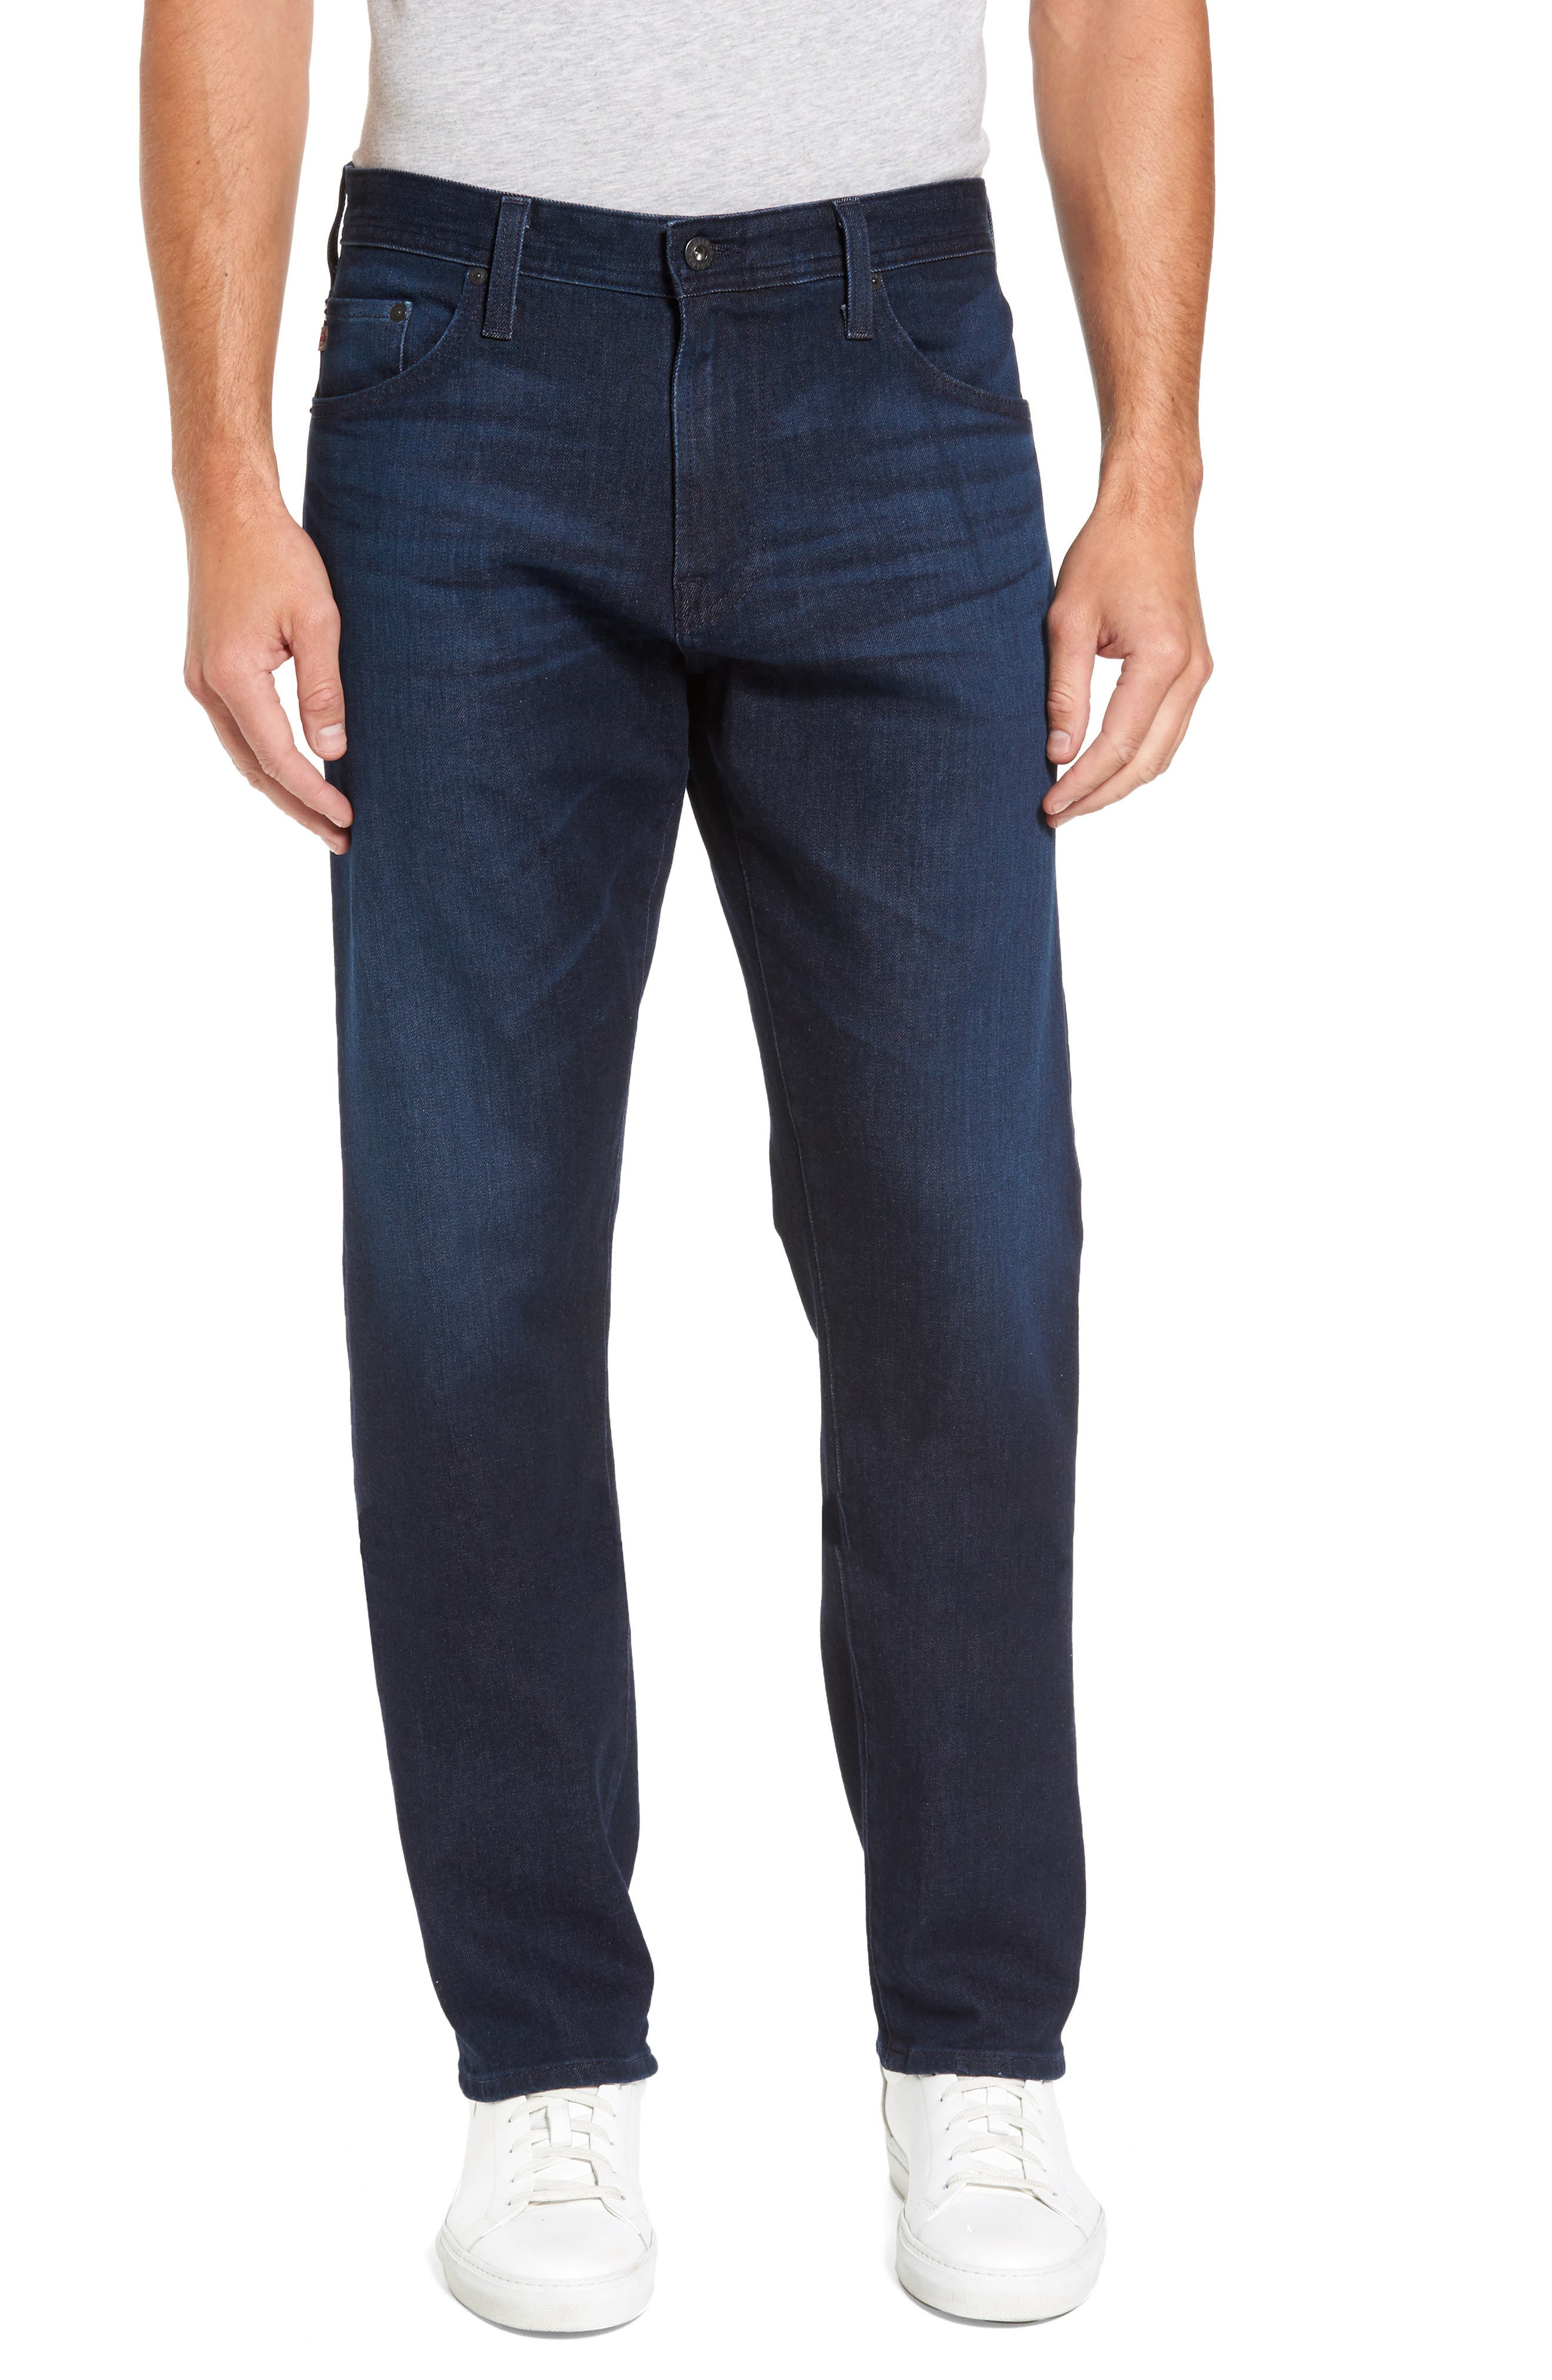 Ives Straight Leg Jeans,                         Main,                         color, Vibe